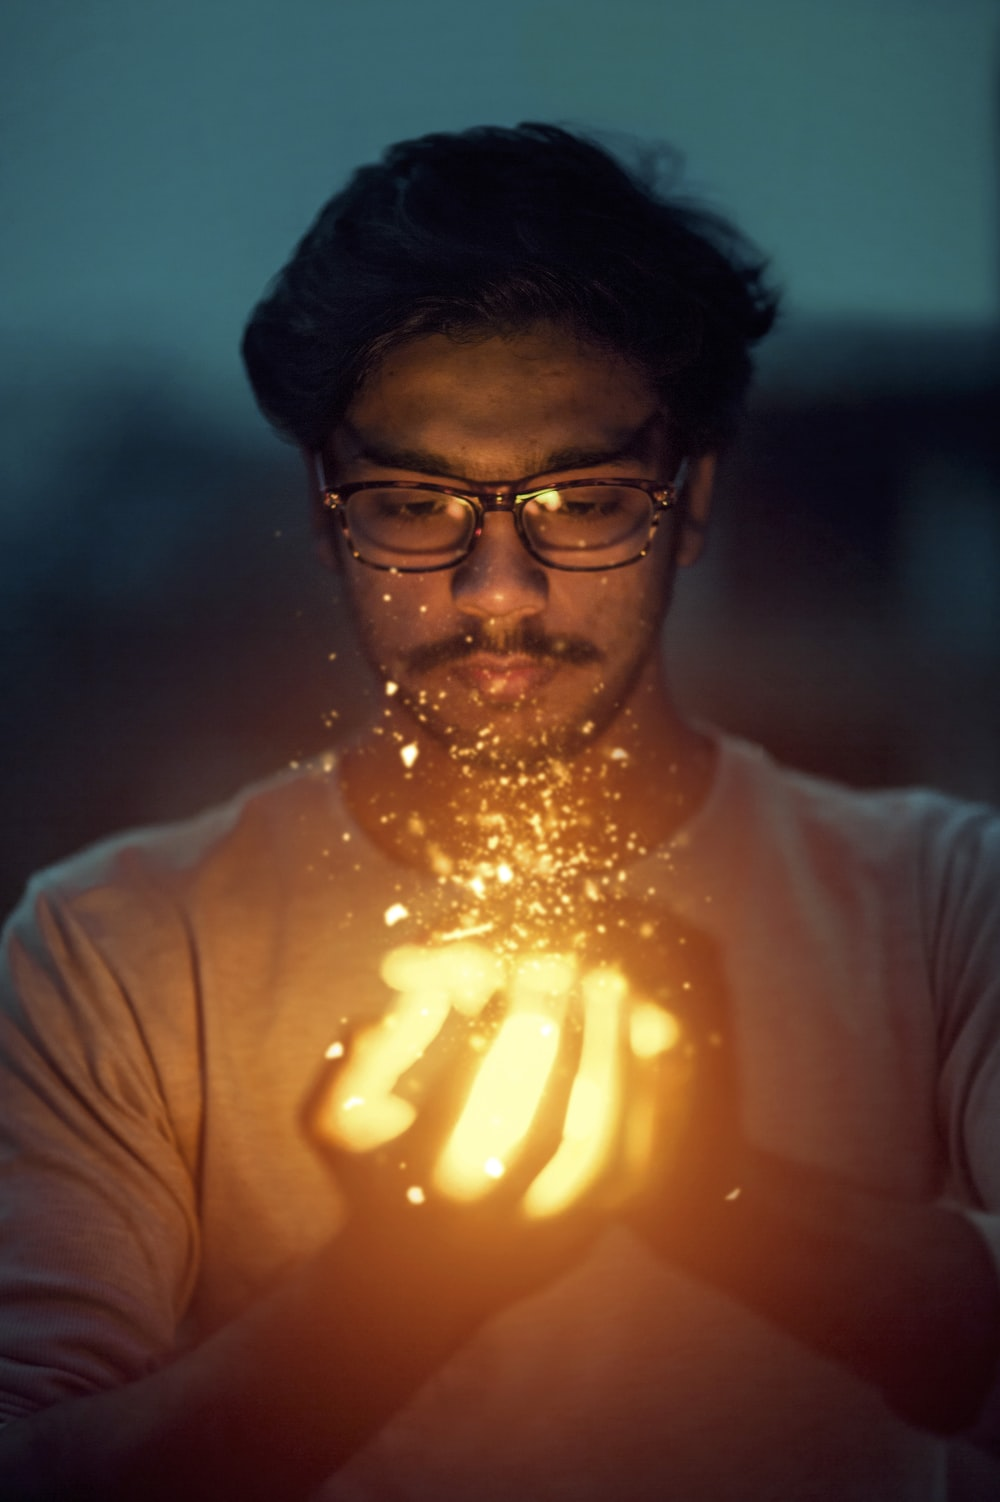 man holding lighted art